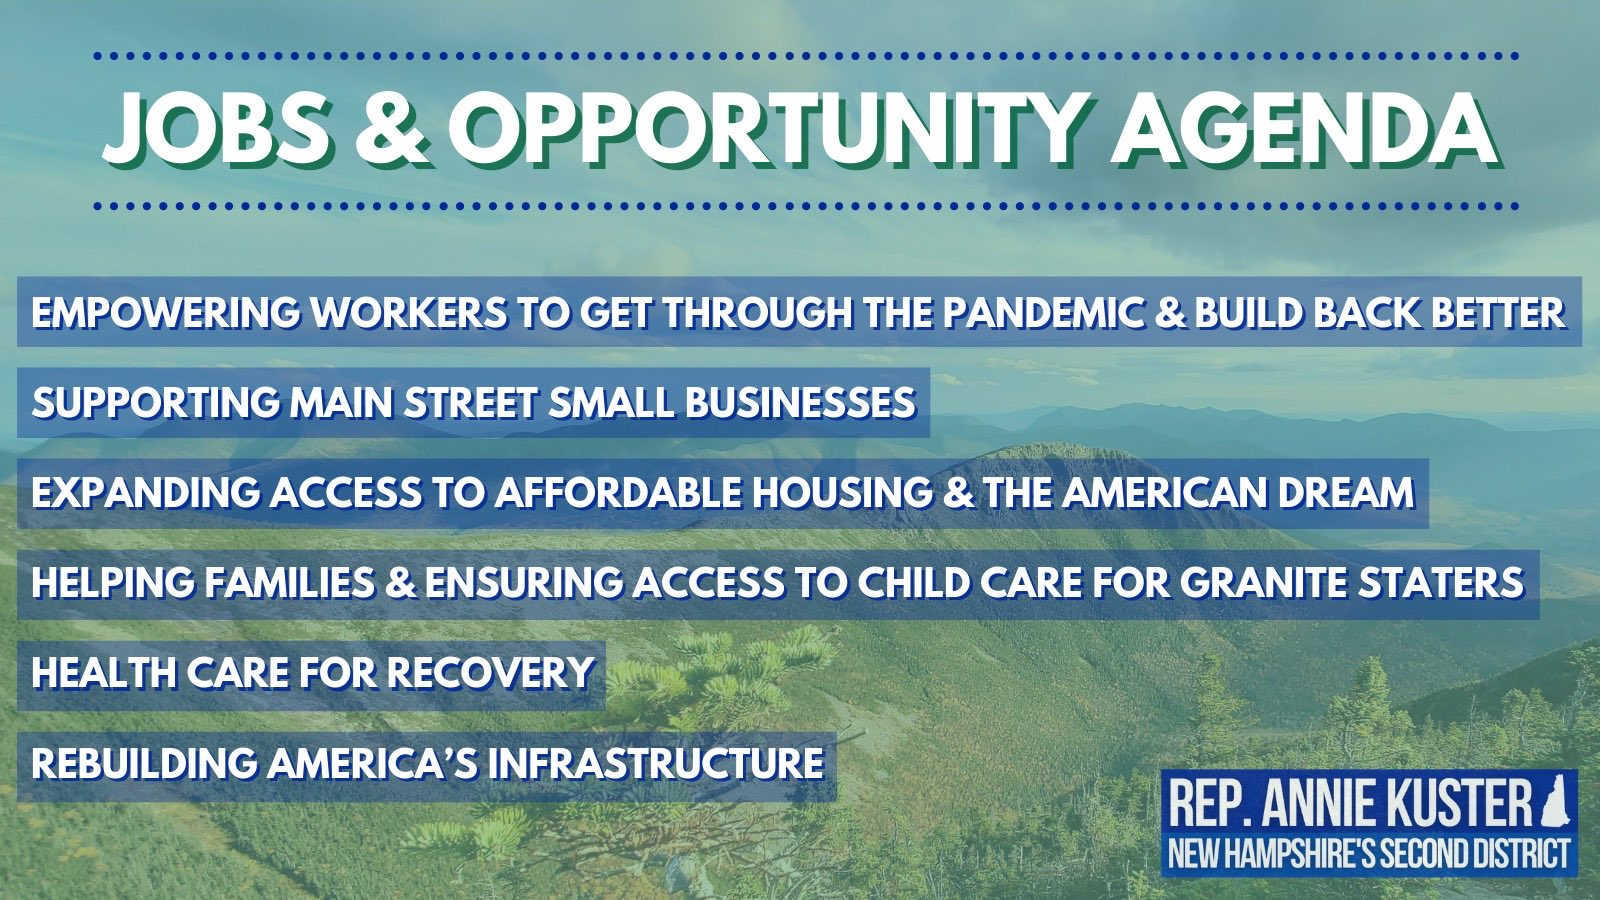 jobs and opportunity agenda